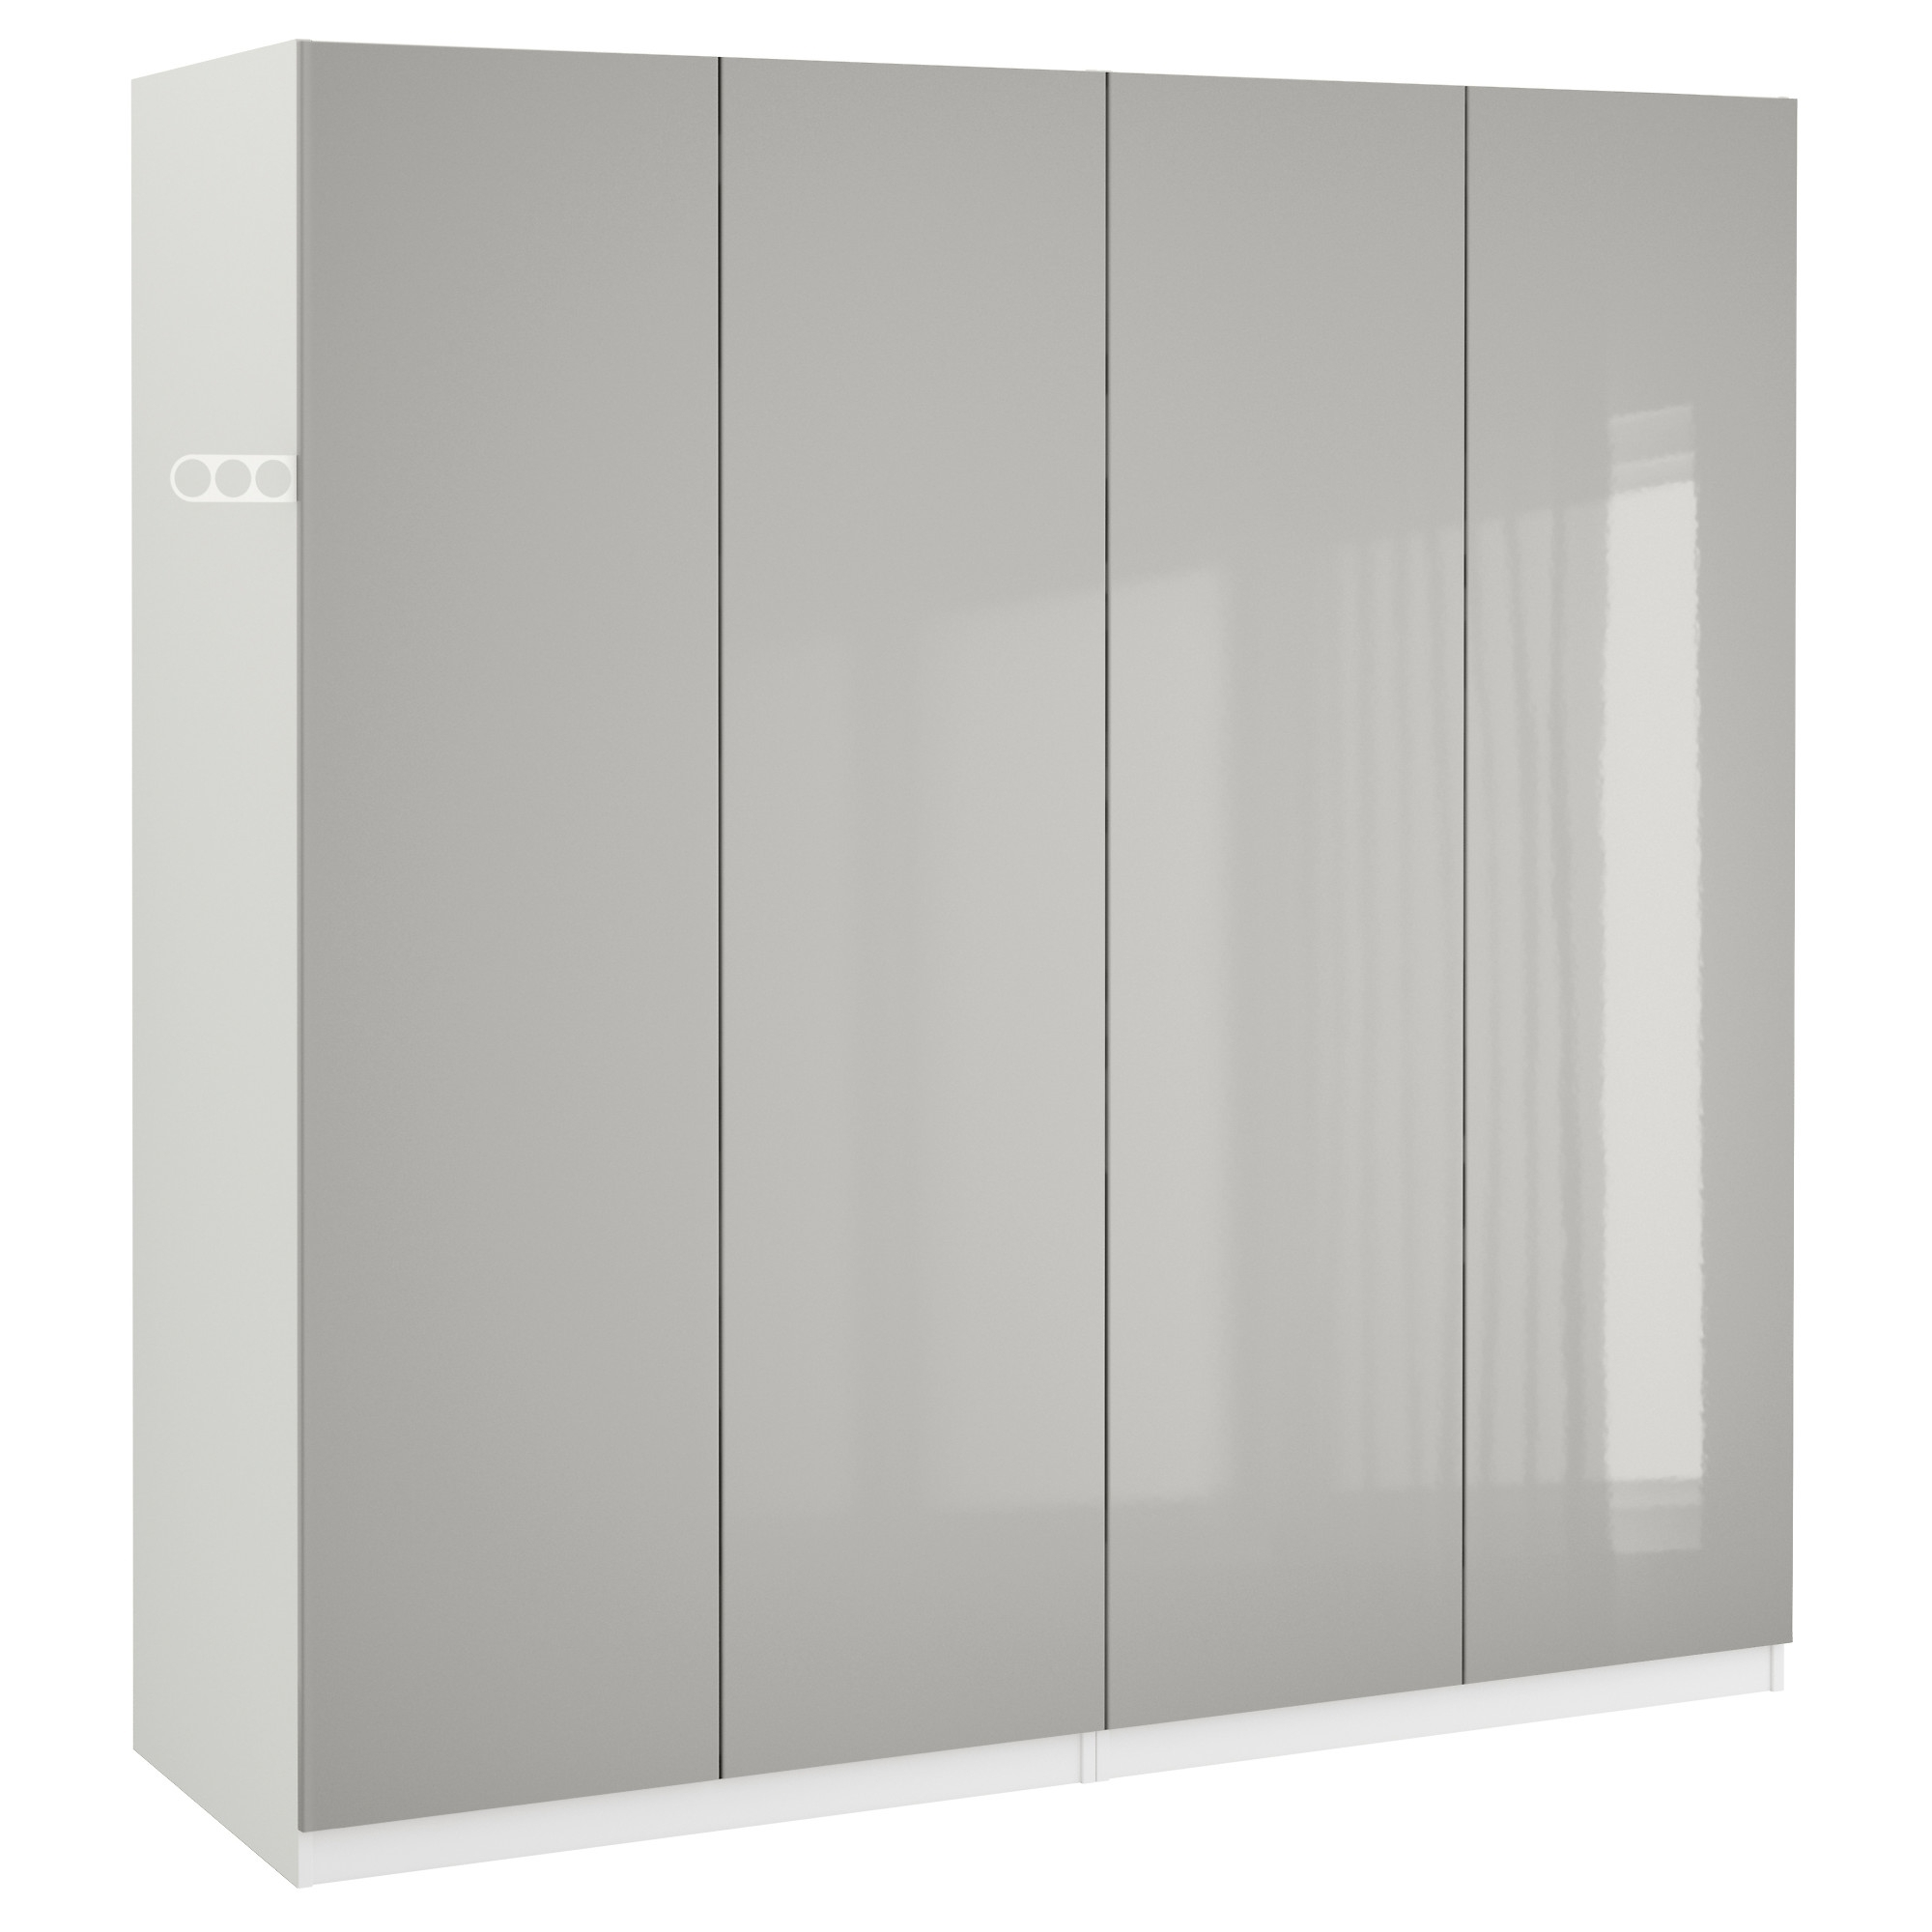 2017 4 Door White Wardrobes With Pax Wardrobe White/fardal High Gloss Light Grey 200X60X201 Cm – Ikea (View 1 of 15)